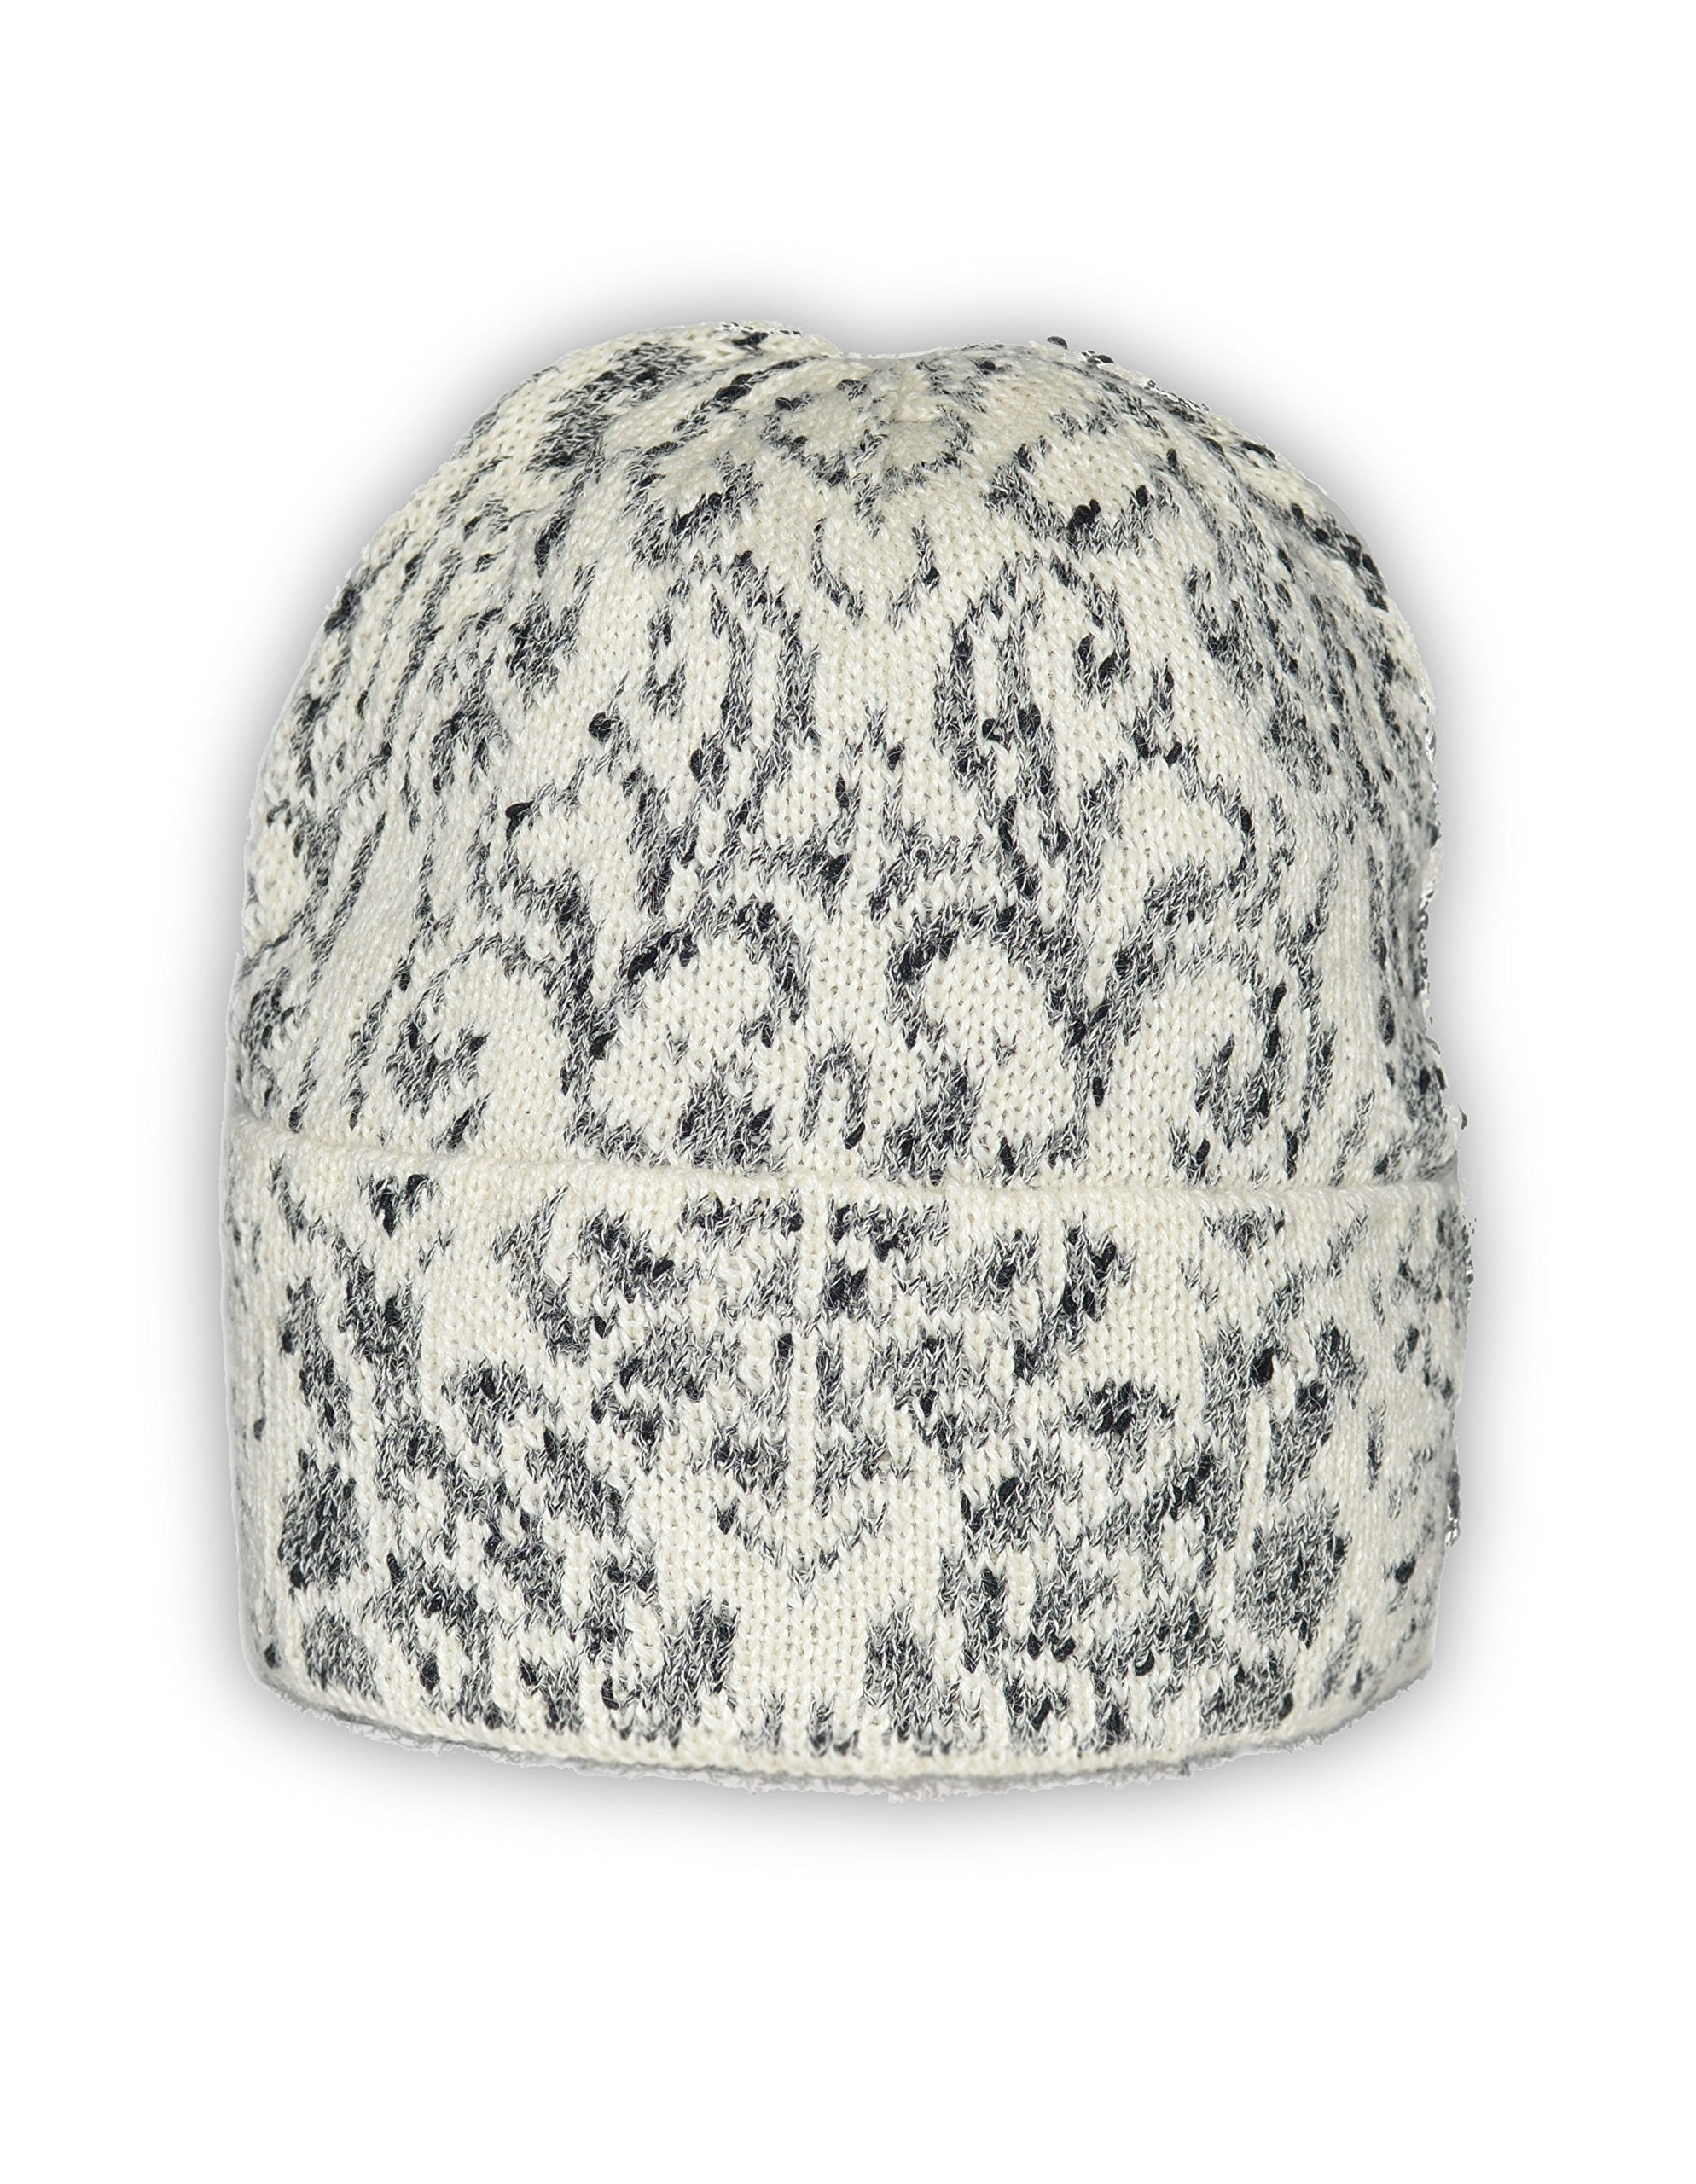 Invisible World Women's 100% Alpaca Wool Hat Knit Unisex Beanie Winter Oxa Md by Invisible World (Image #1)